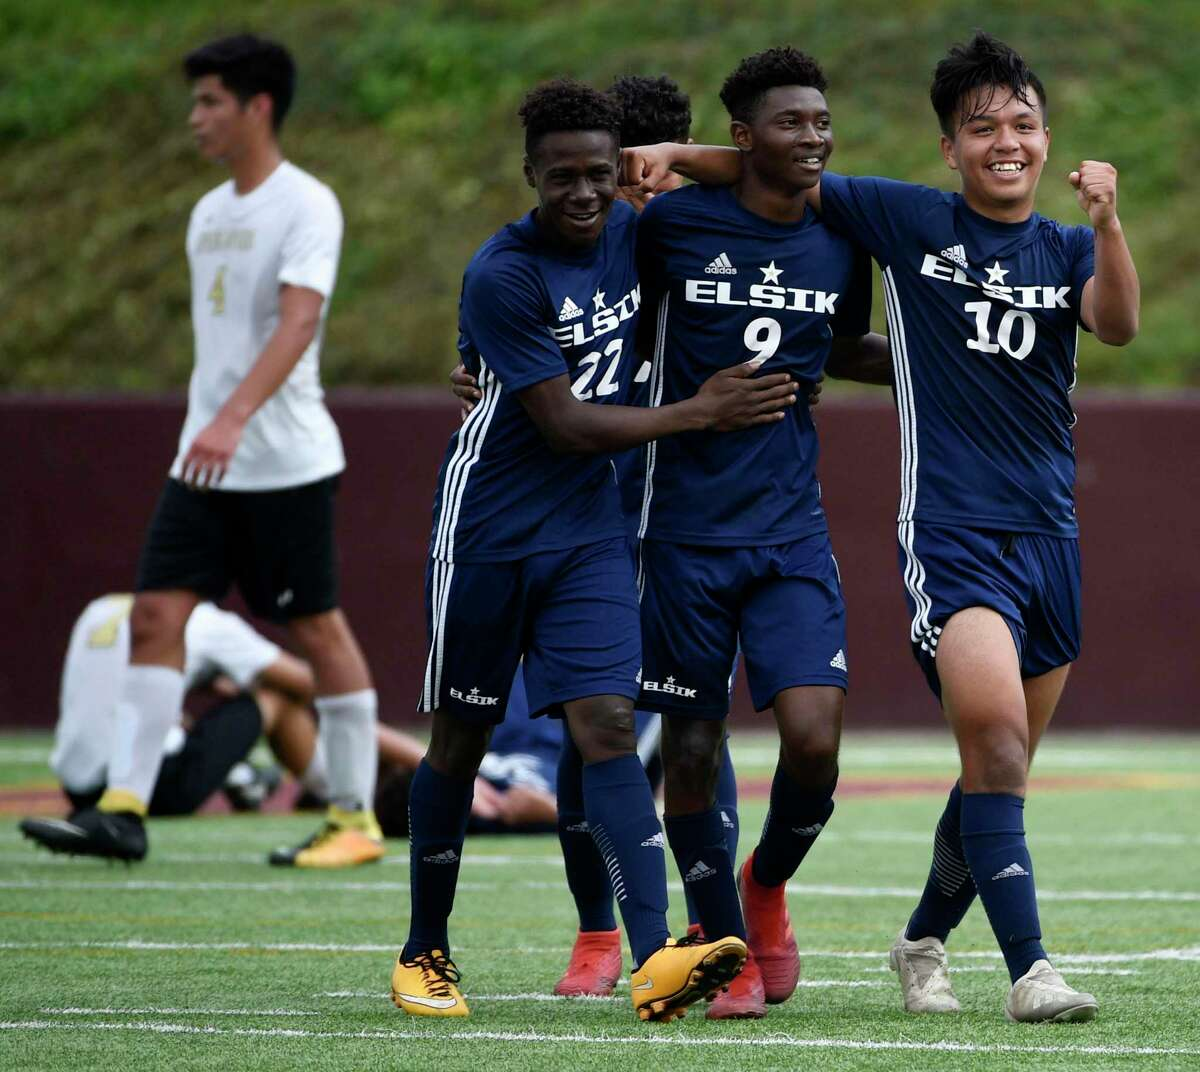 Elsik's Mayquel Aquino (22), Dandord Ndabah (9), and Edgar Rentaria celebrate the team's win over Spring Woods in a 6A region 3 final high school soccer match, Saturday, April 13, 2019, in Deer Park.